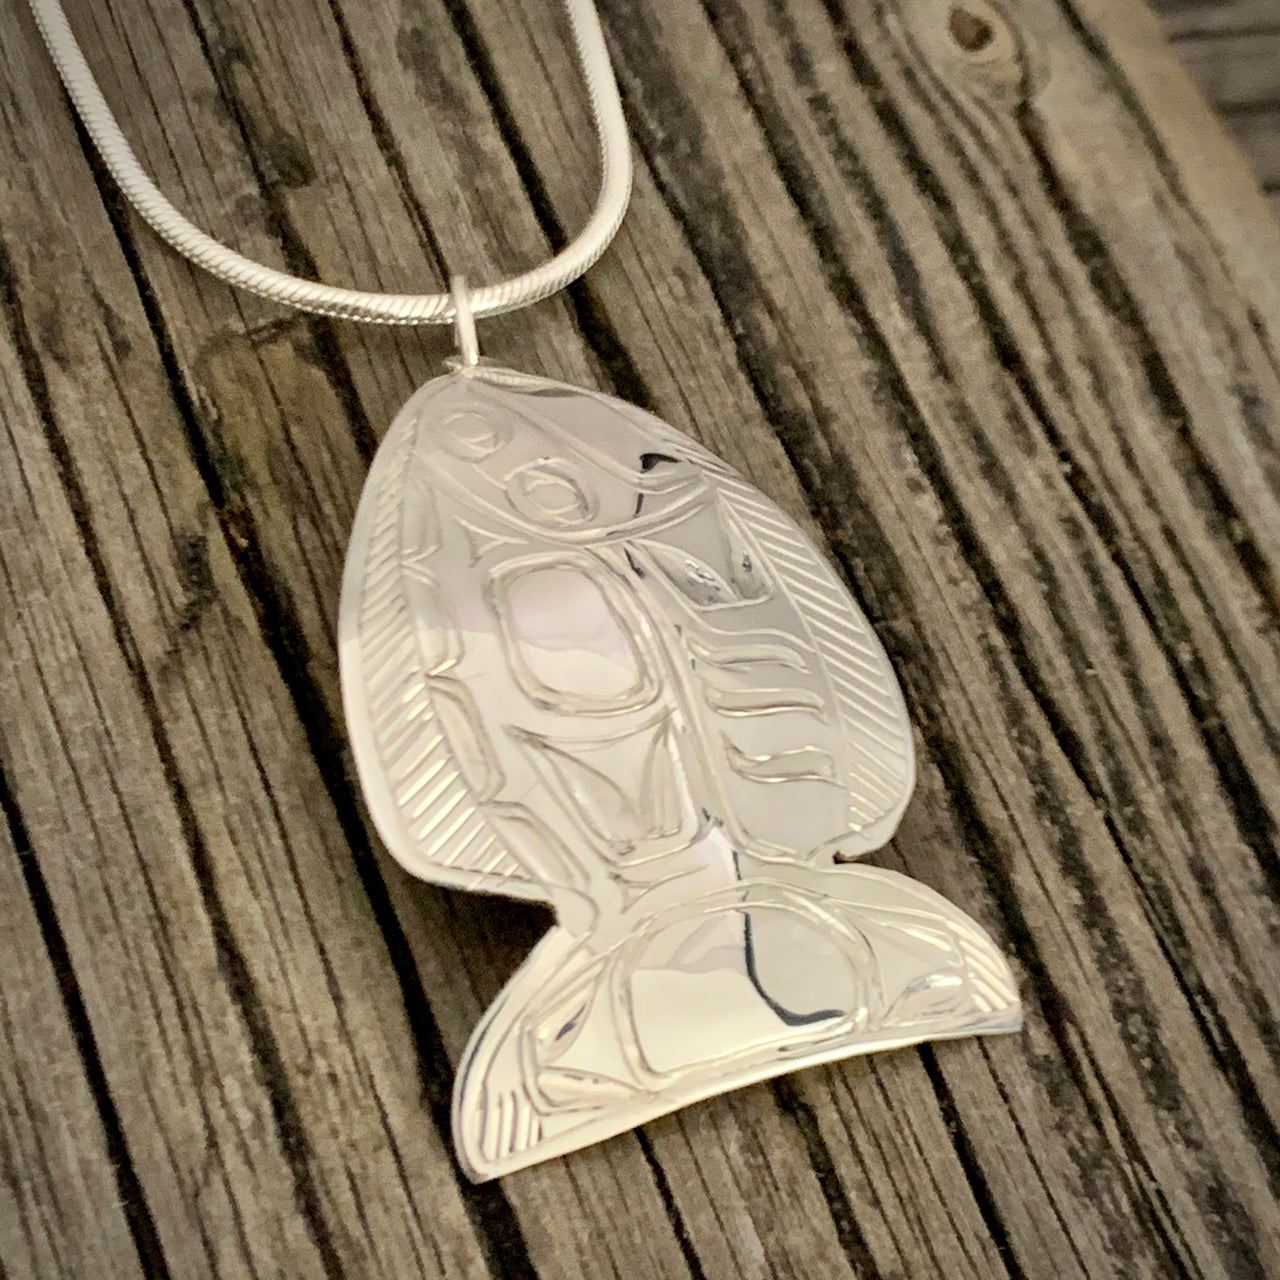 Halibut Pendant by Gene Chilton